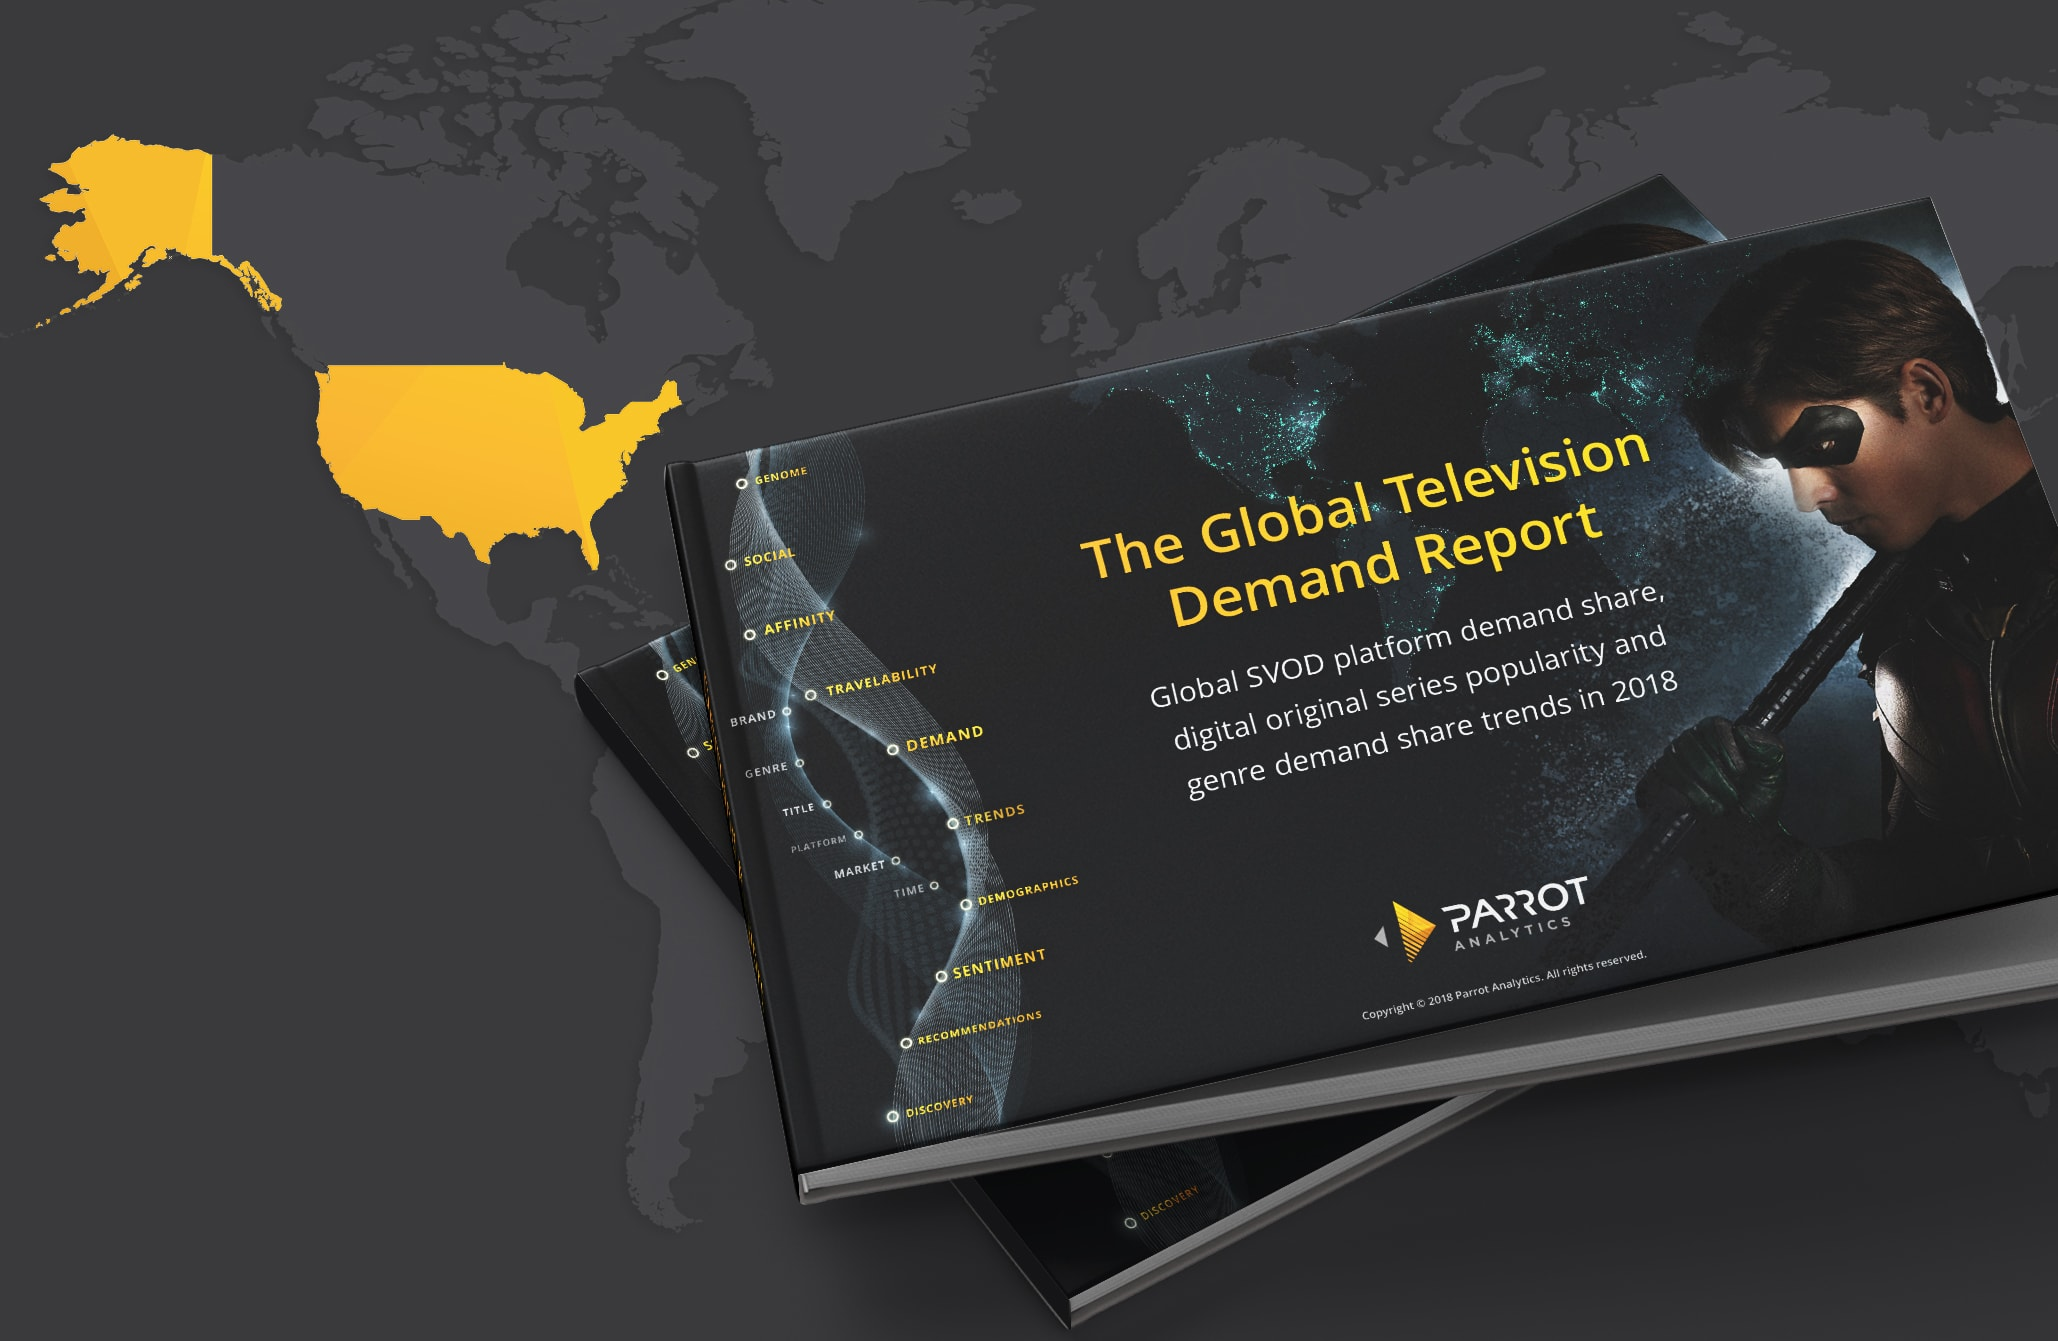 The global success of United States local TV productions and television subgenre insights